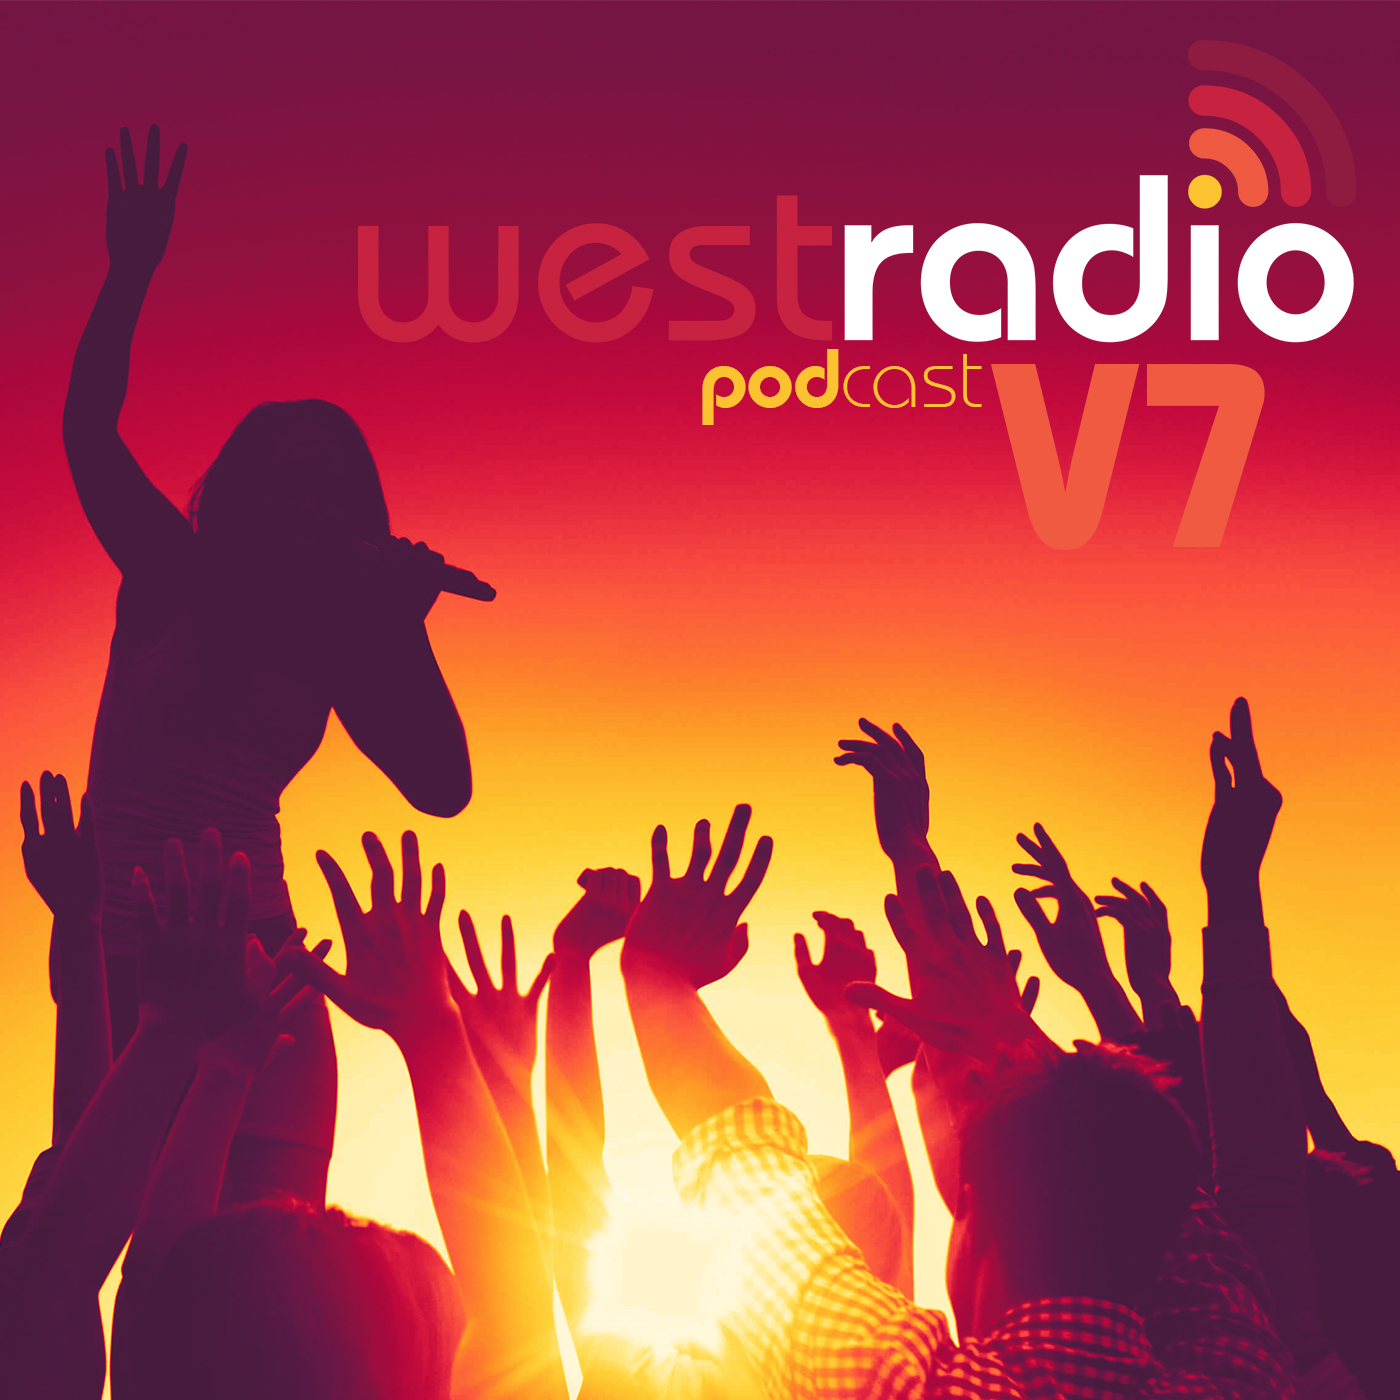 WestRadio - Podcast - Vince 07